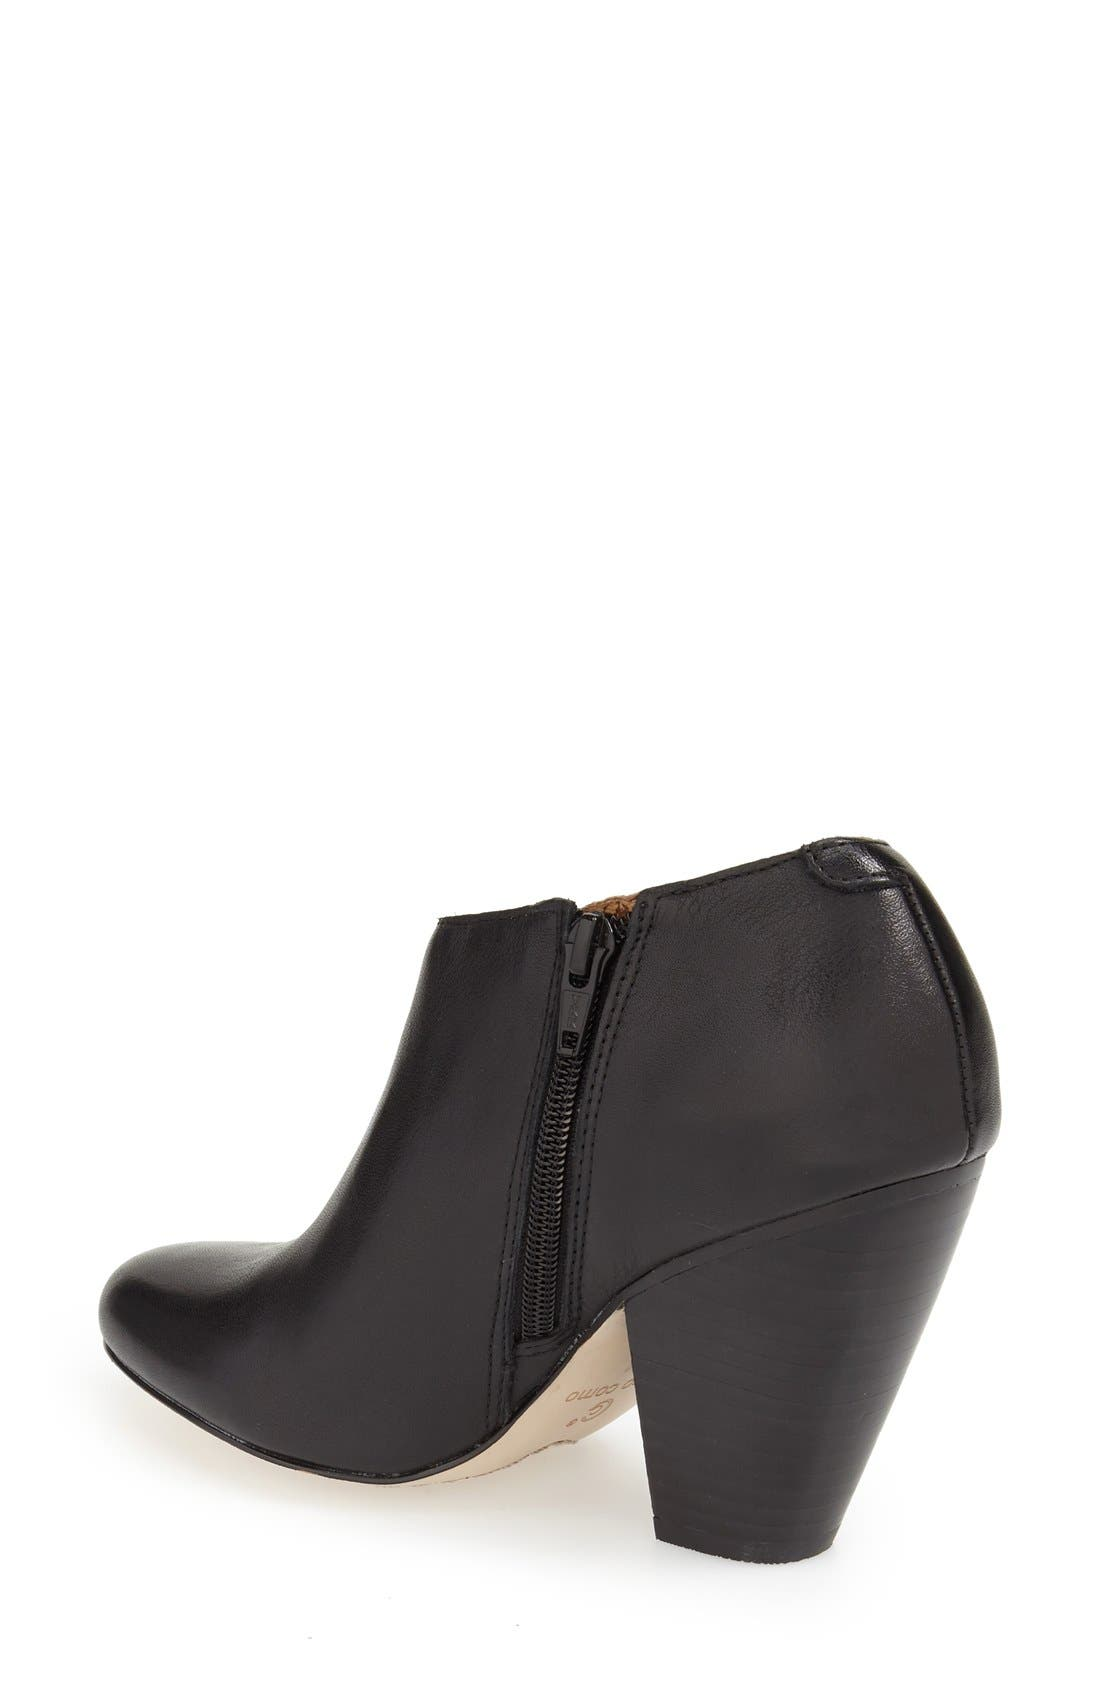 'Yonkers' Almond Toe Cutout Bootie,                             Alternate thumbnail 2, color,                             Black Leather